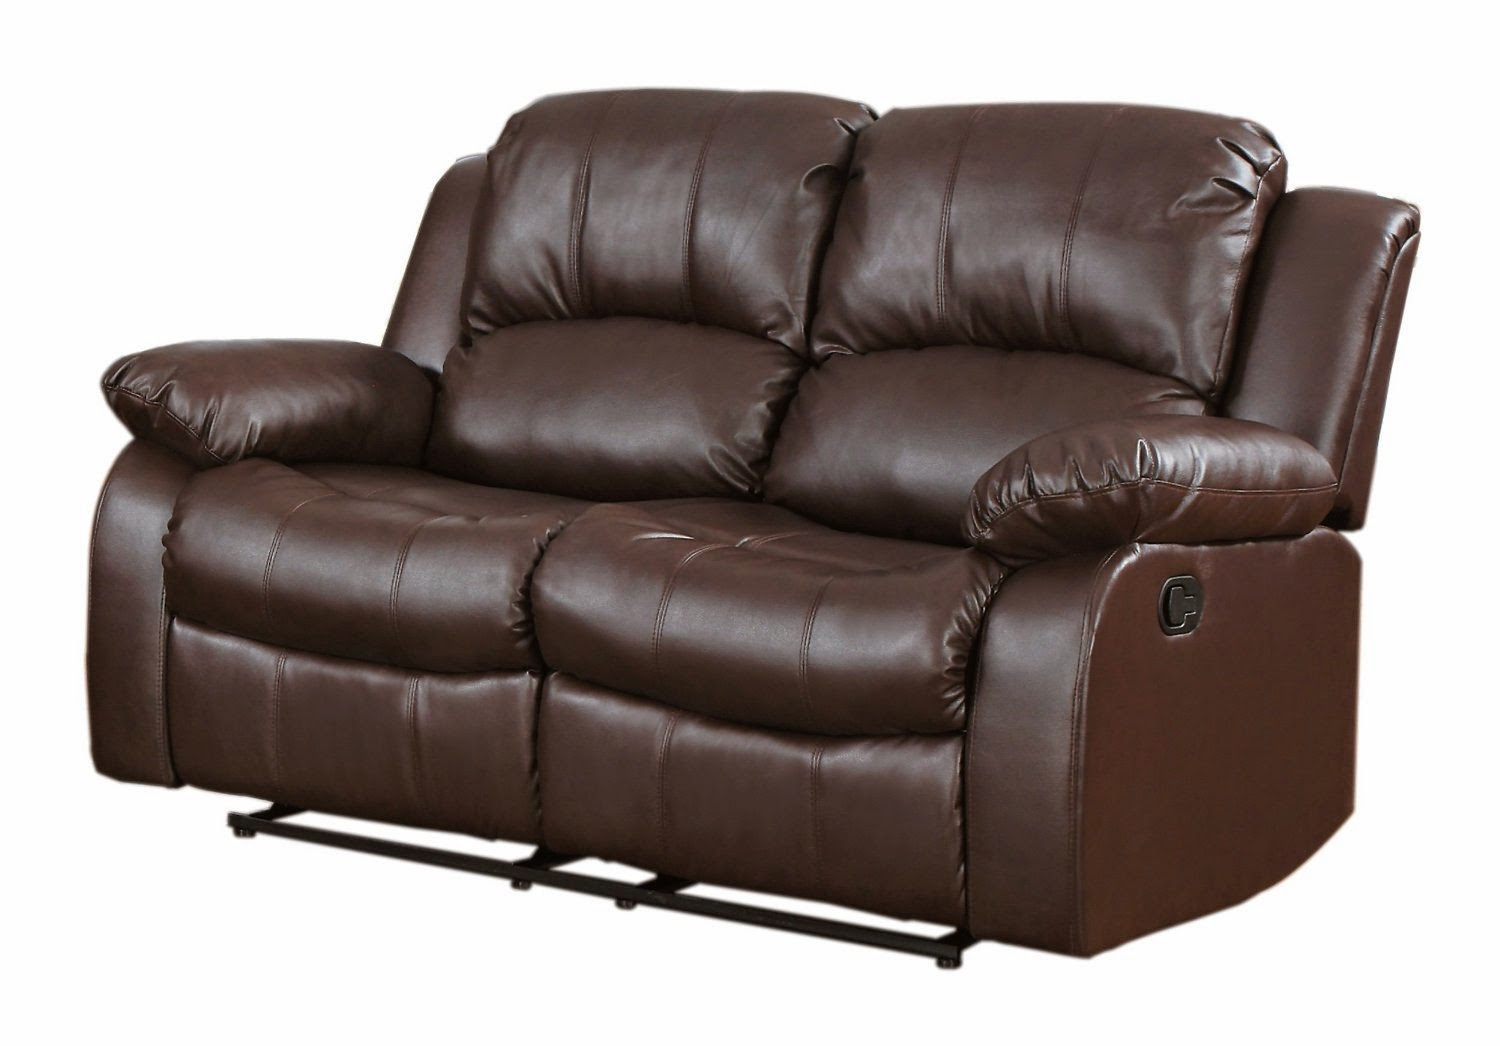 The best reclining sofas ratings reviews cheap faux leather recliner sofas Sofa loveseat